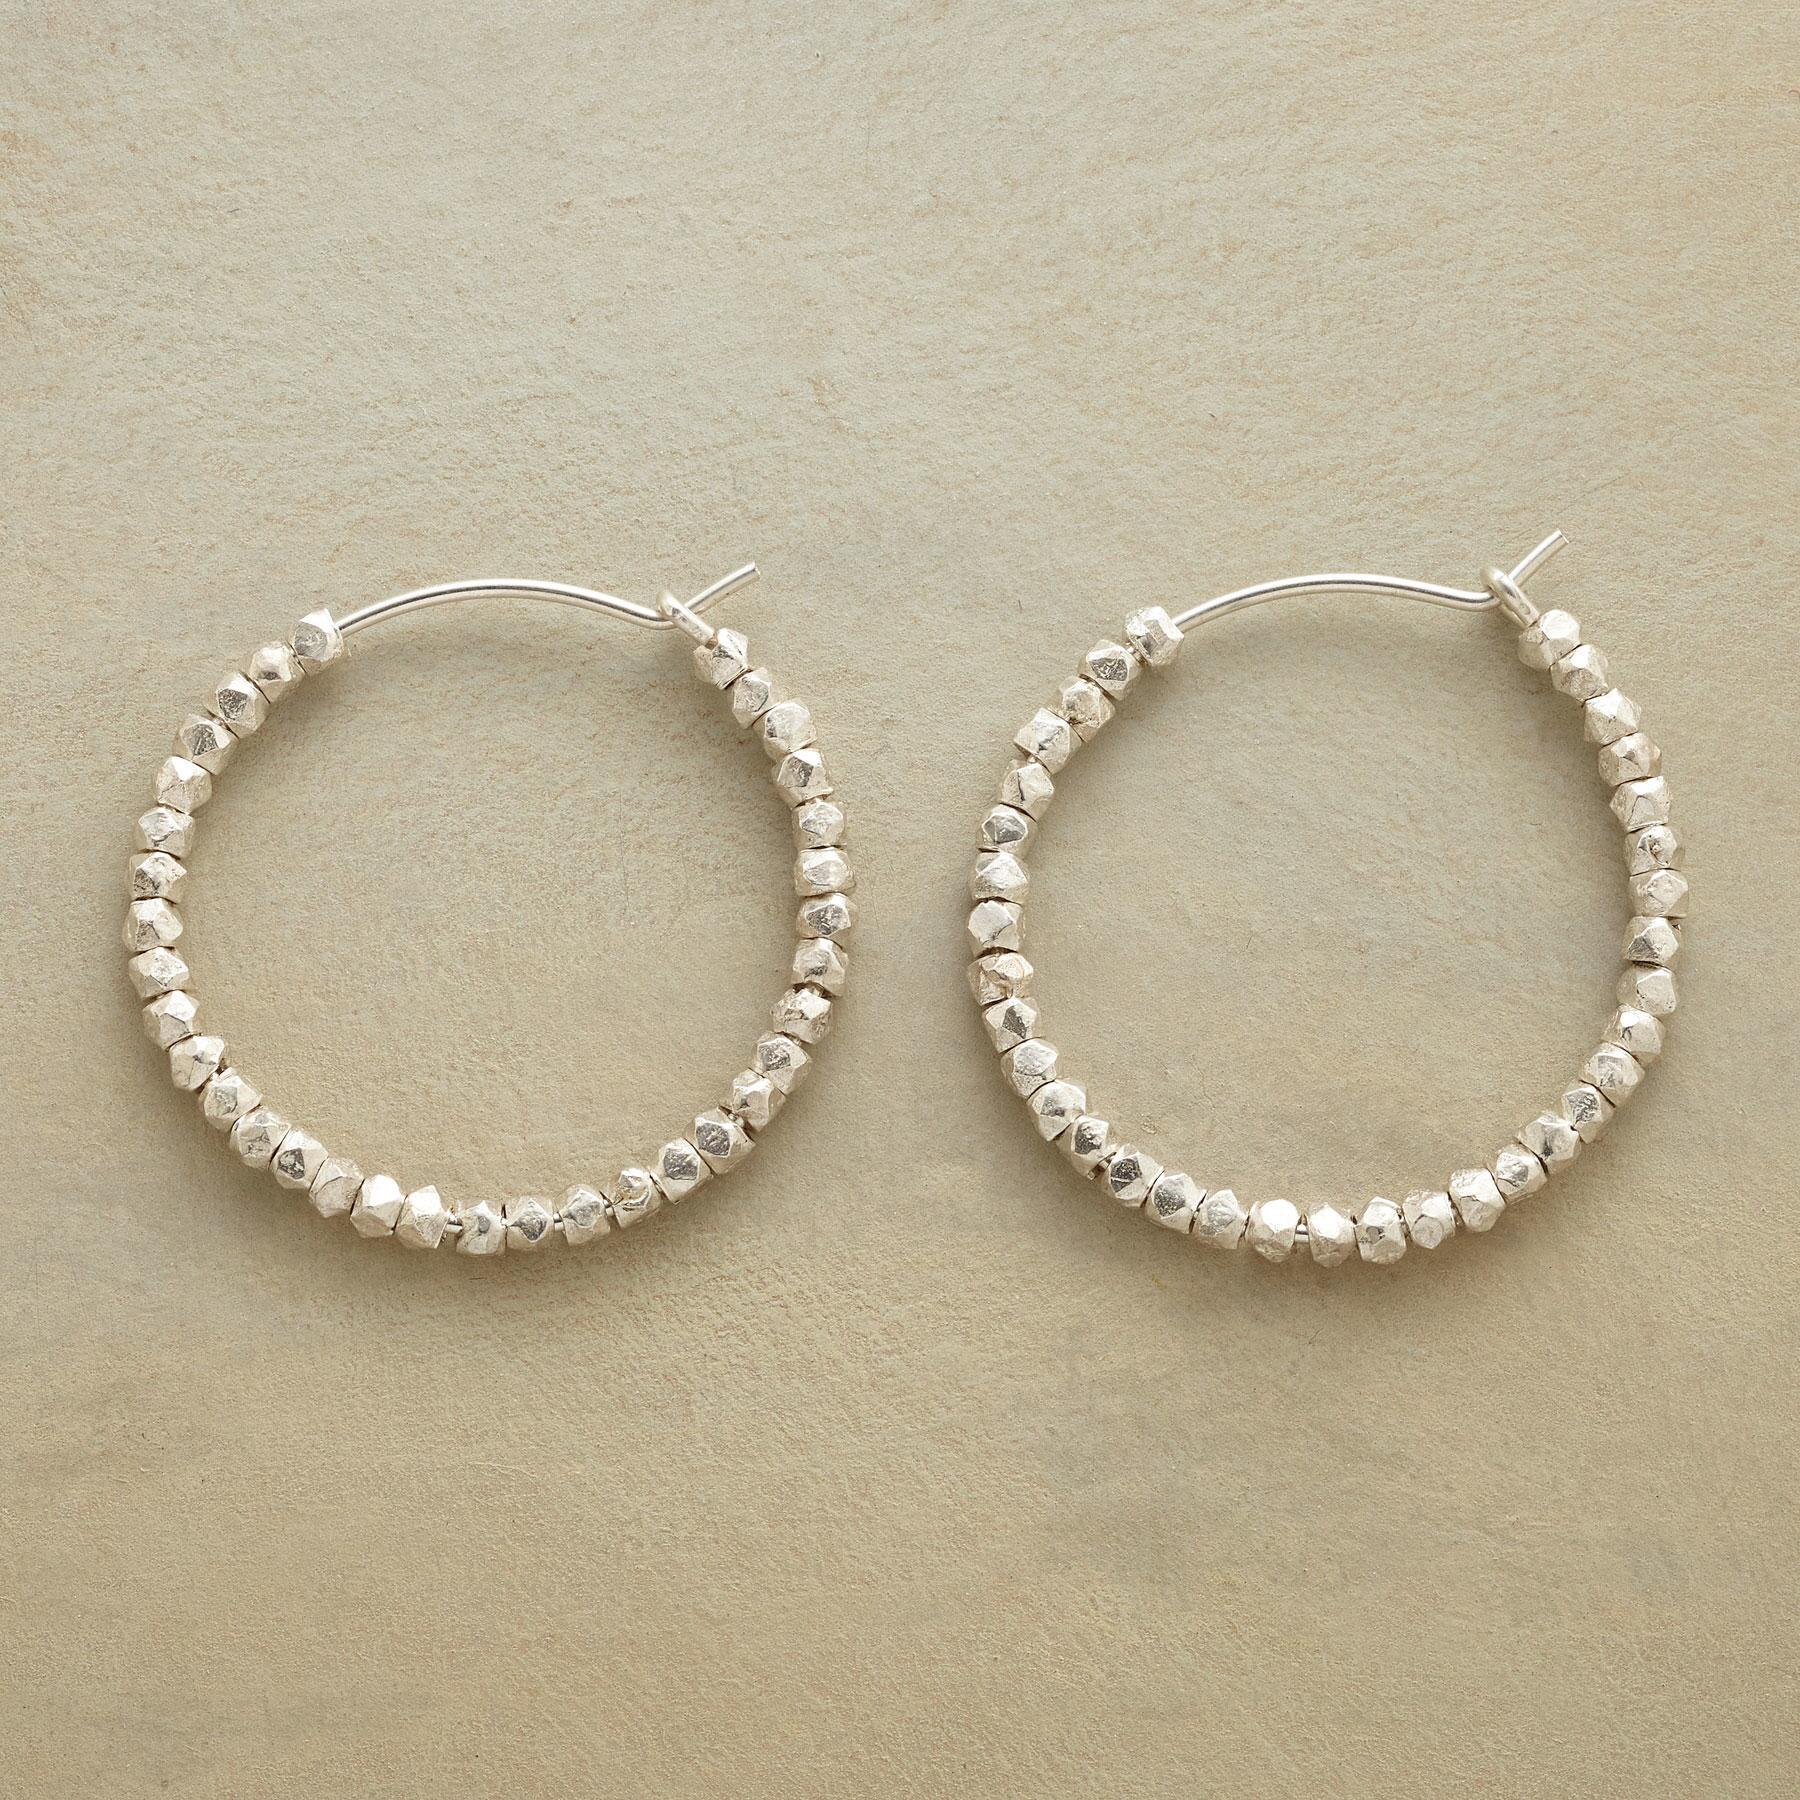 BEAD BY BEAD HOOPS: View 1